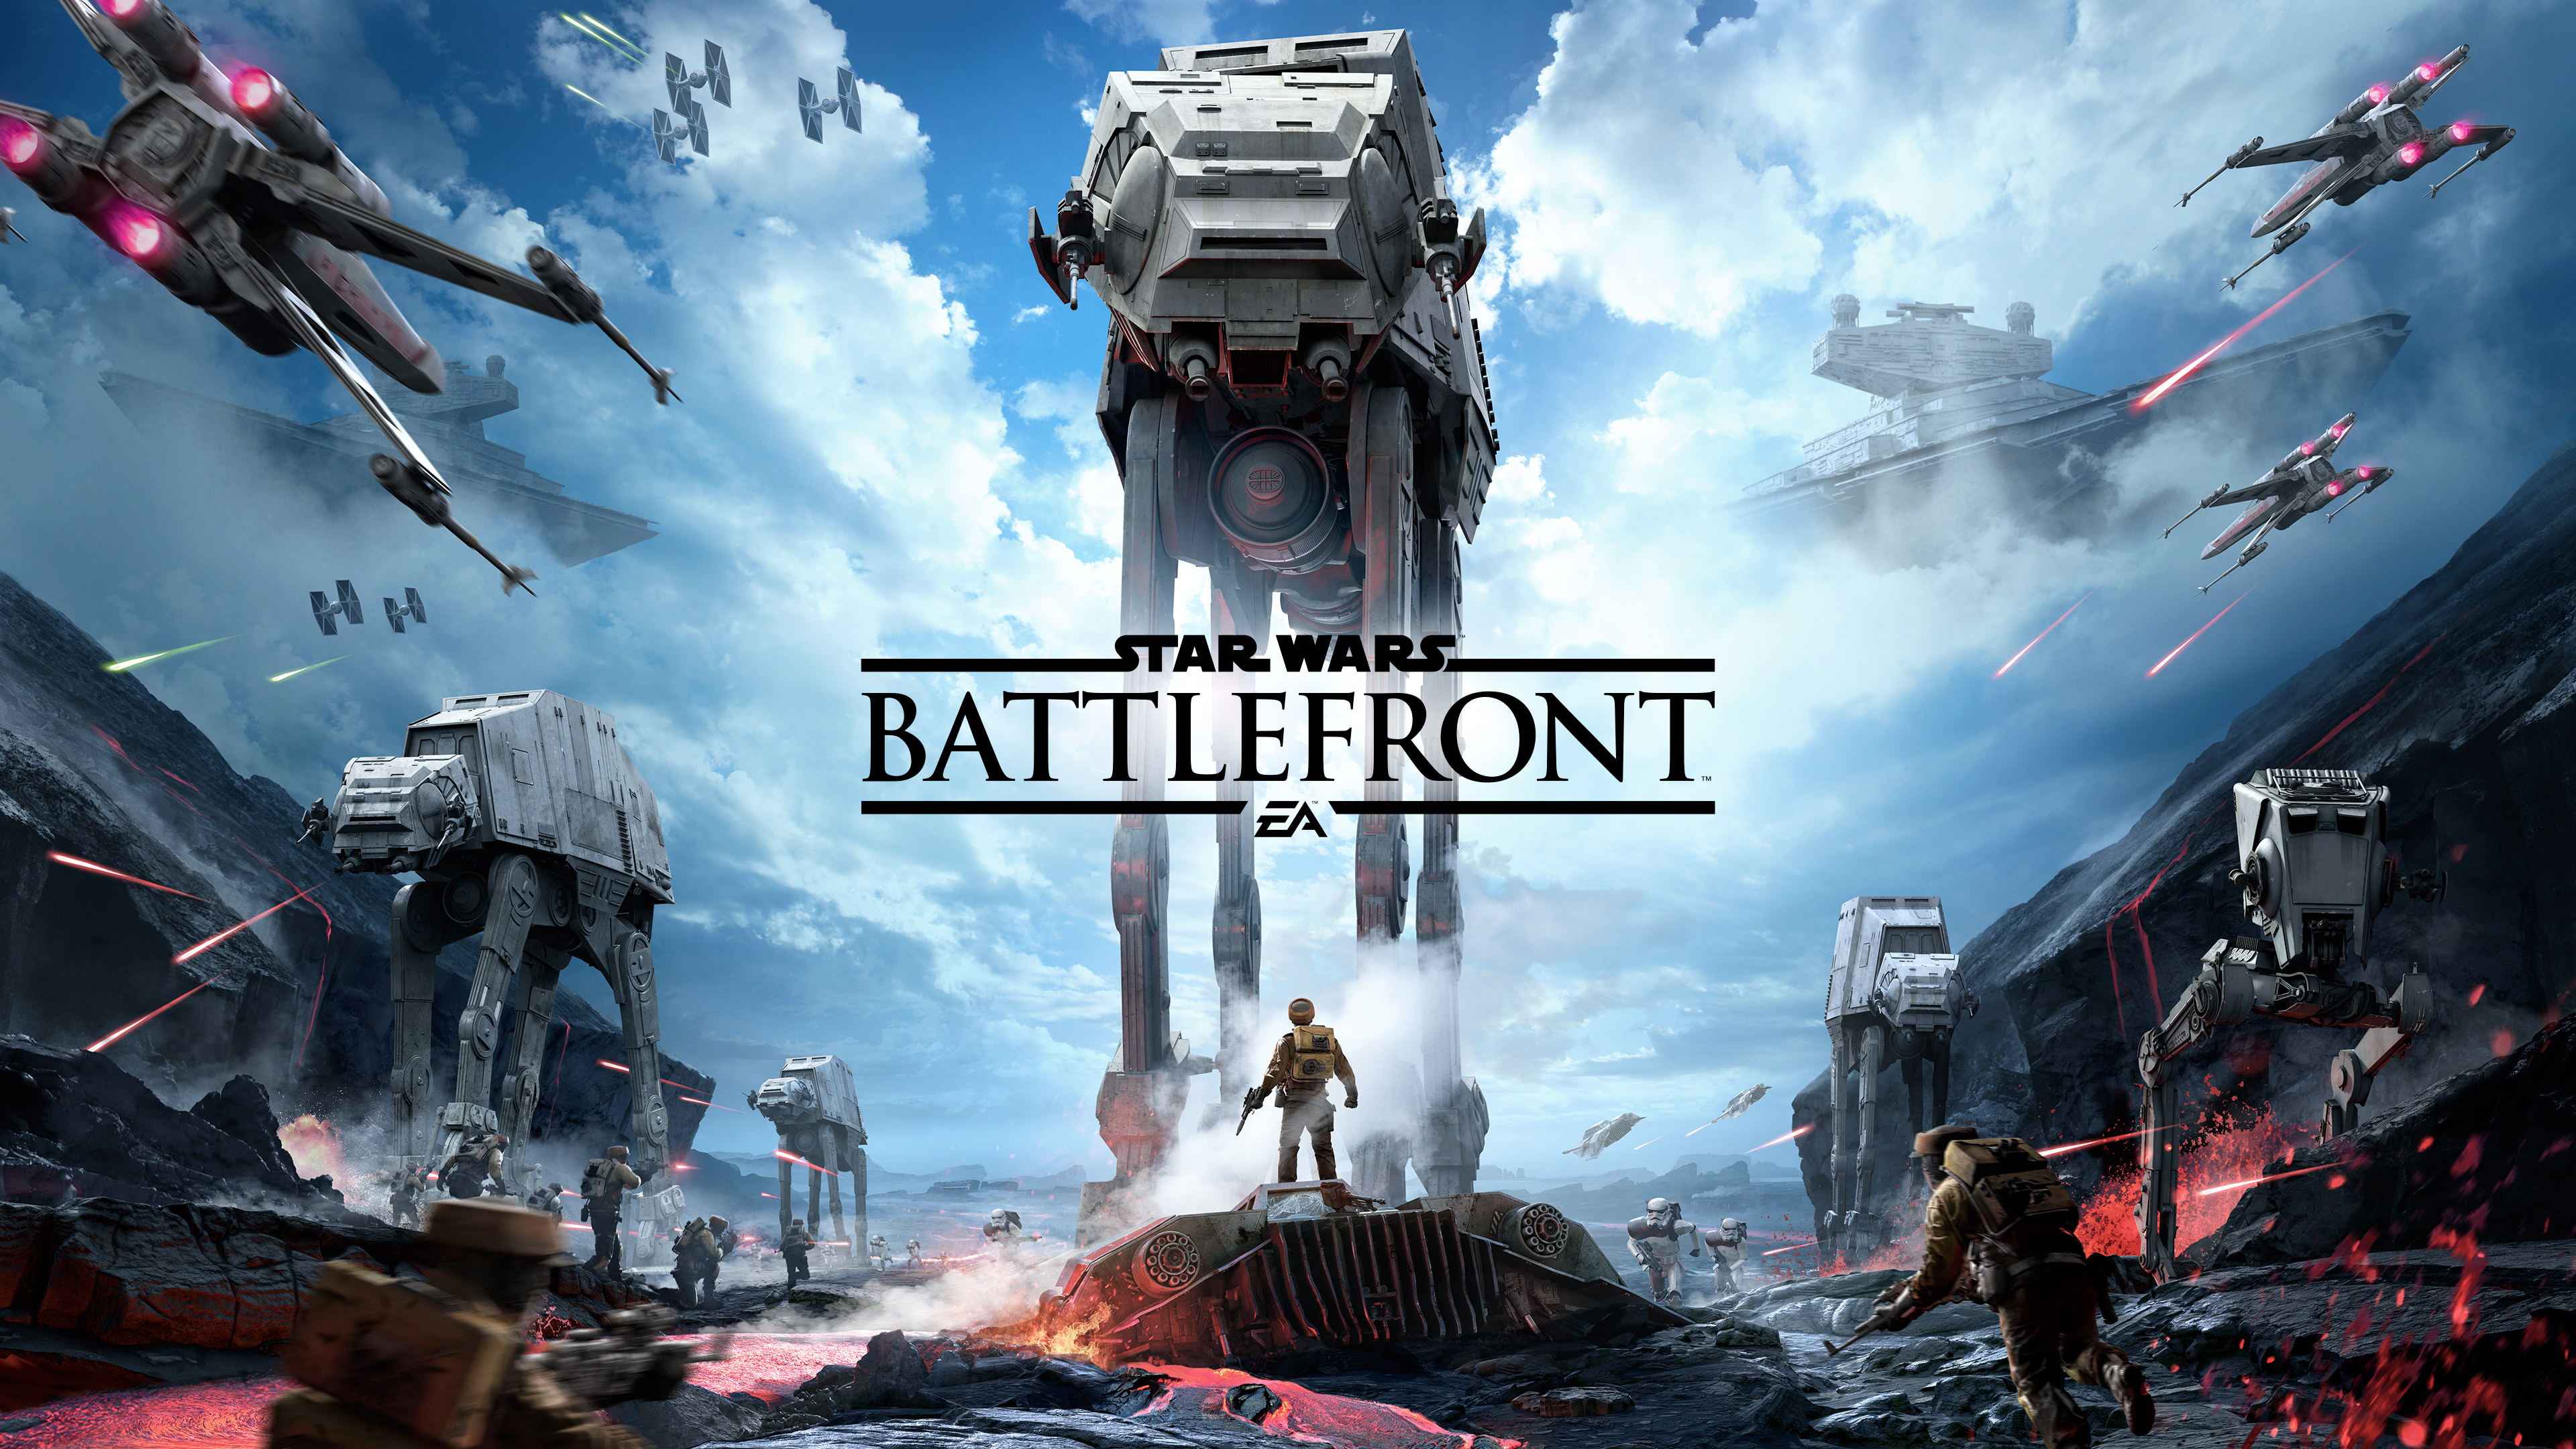 Star Wars BattleFront Franchise